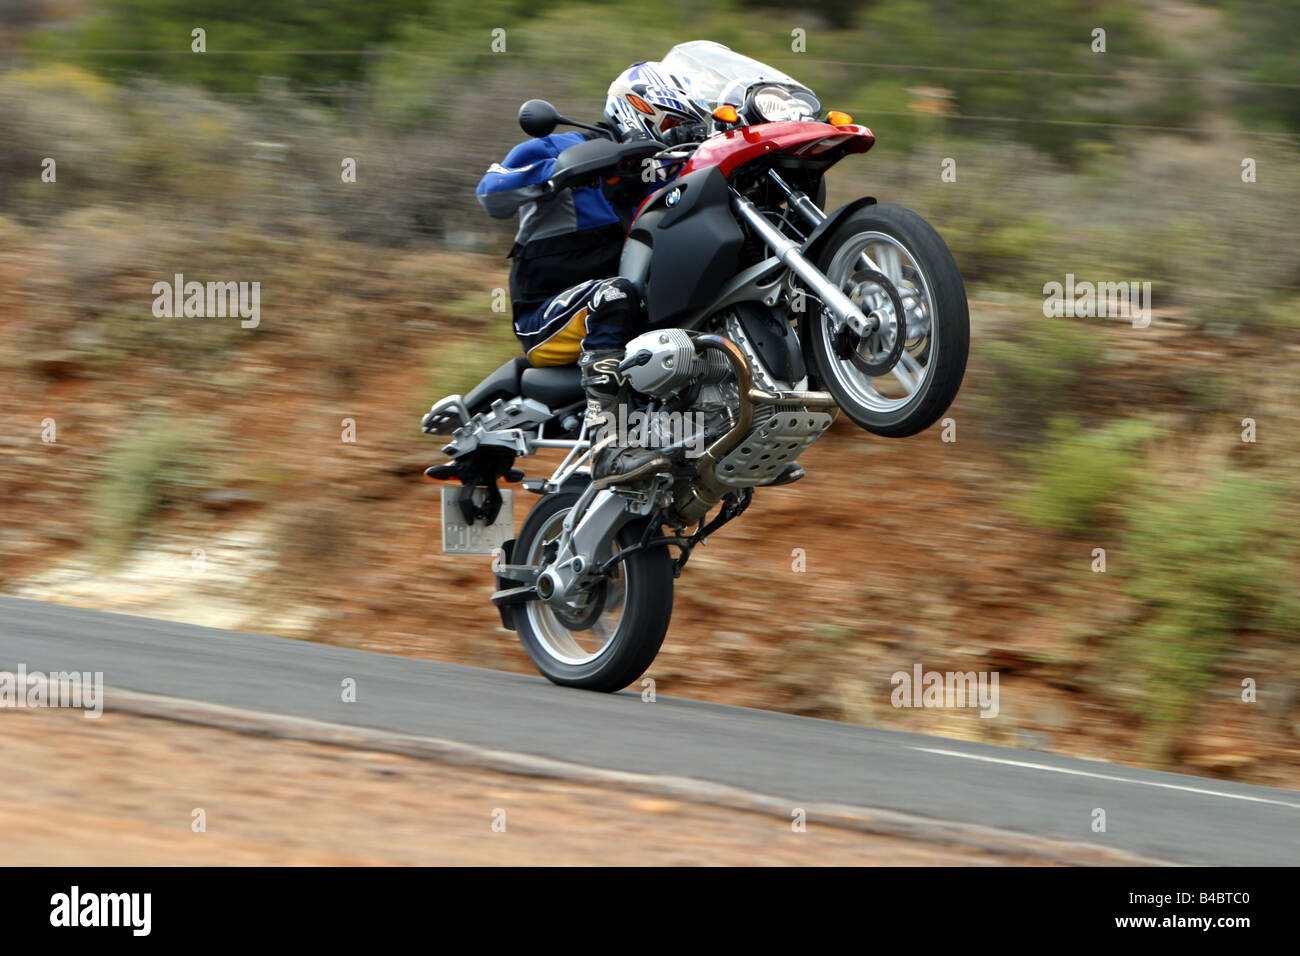 Bmw Gs 1200 Stock Photos & Bmw Gs 1200 Stock Images - Alamy